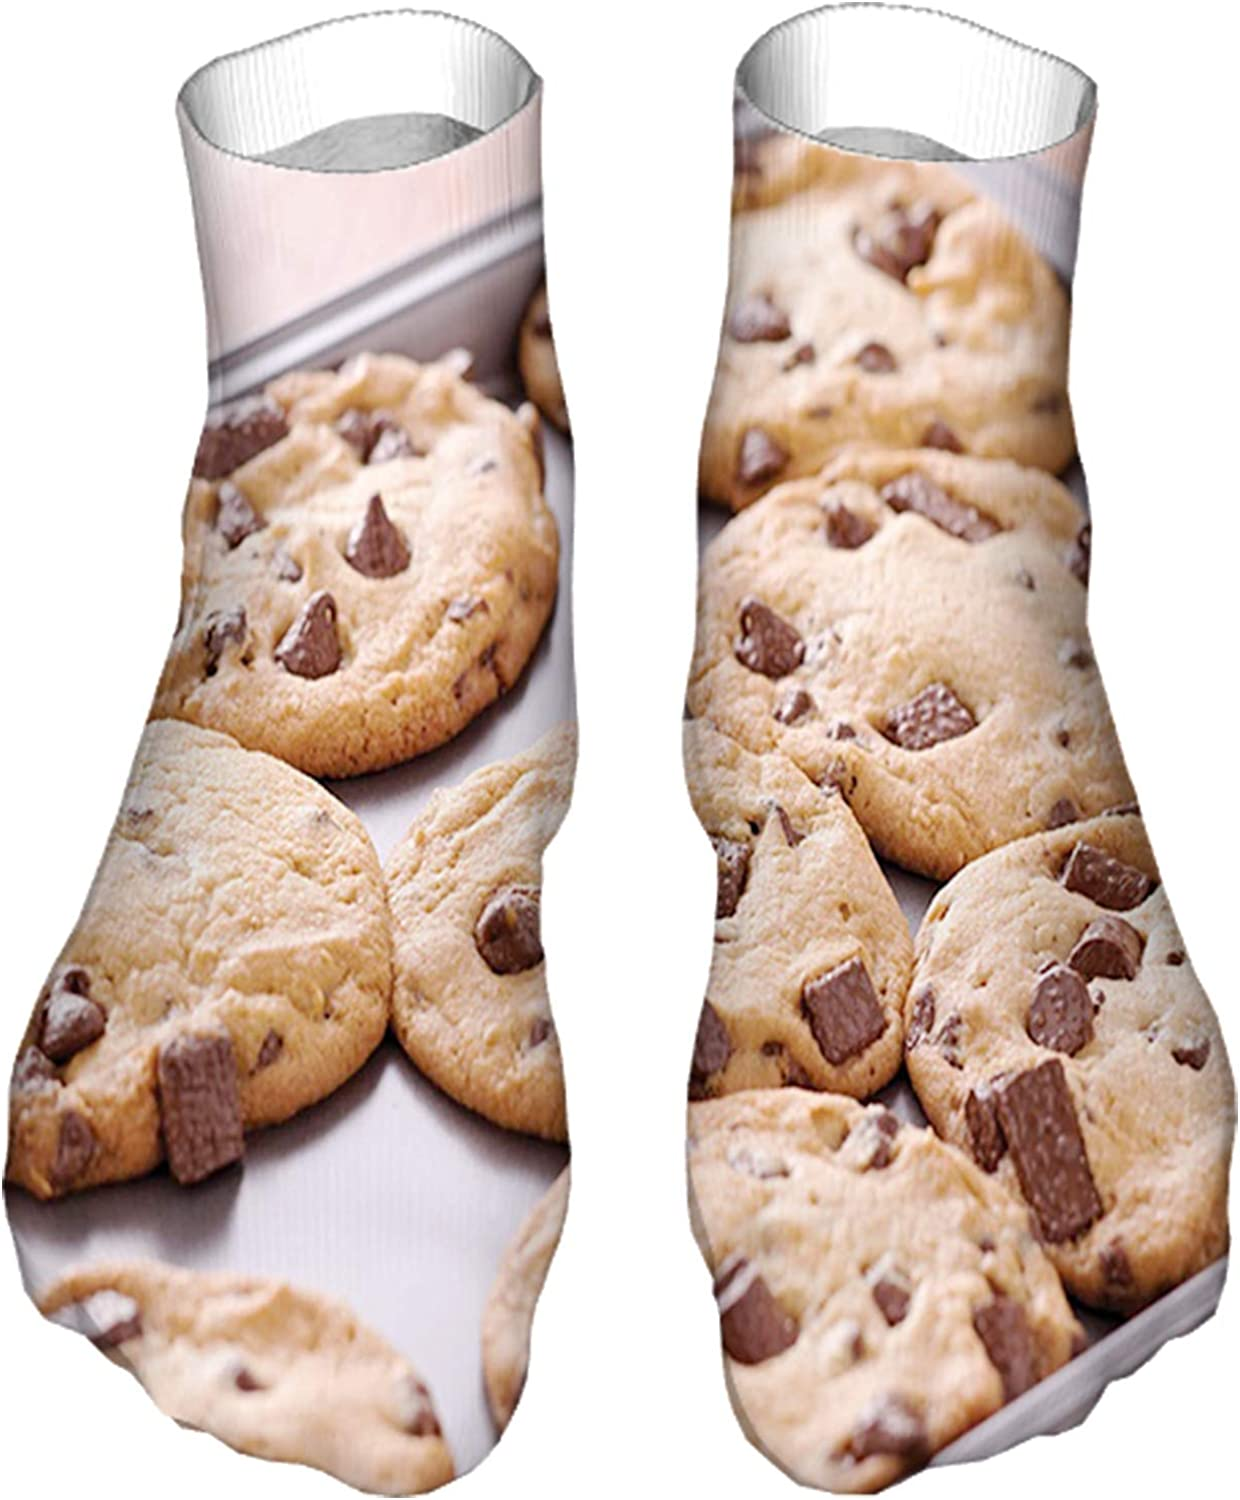 Funny Socks for Men & Women ,Fun Socks ,Crazy Colorful Cool Novelty Cute Dress Socks,Chocolate Chip Snacks on a Tray Baking Themed Food